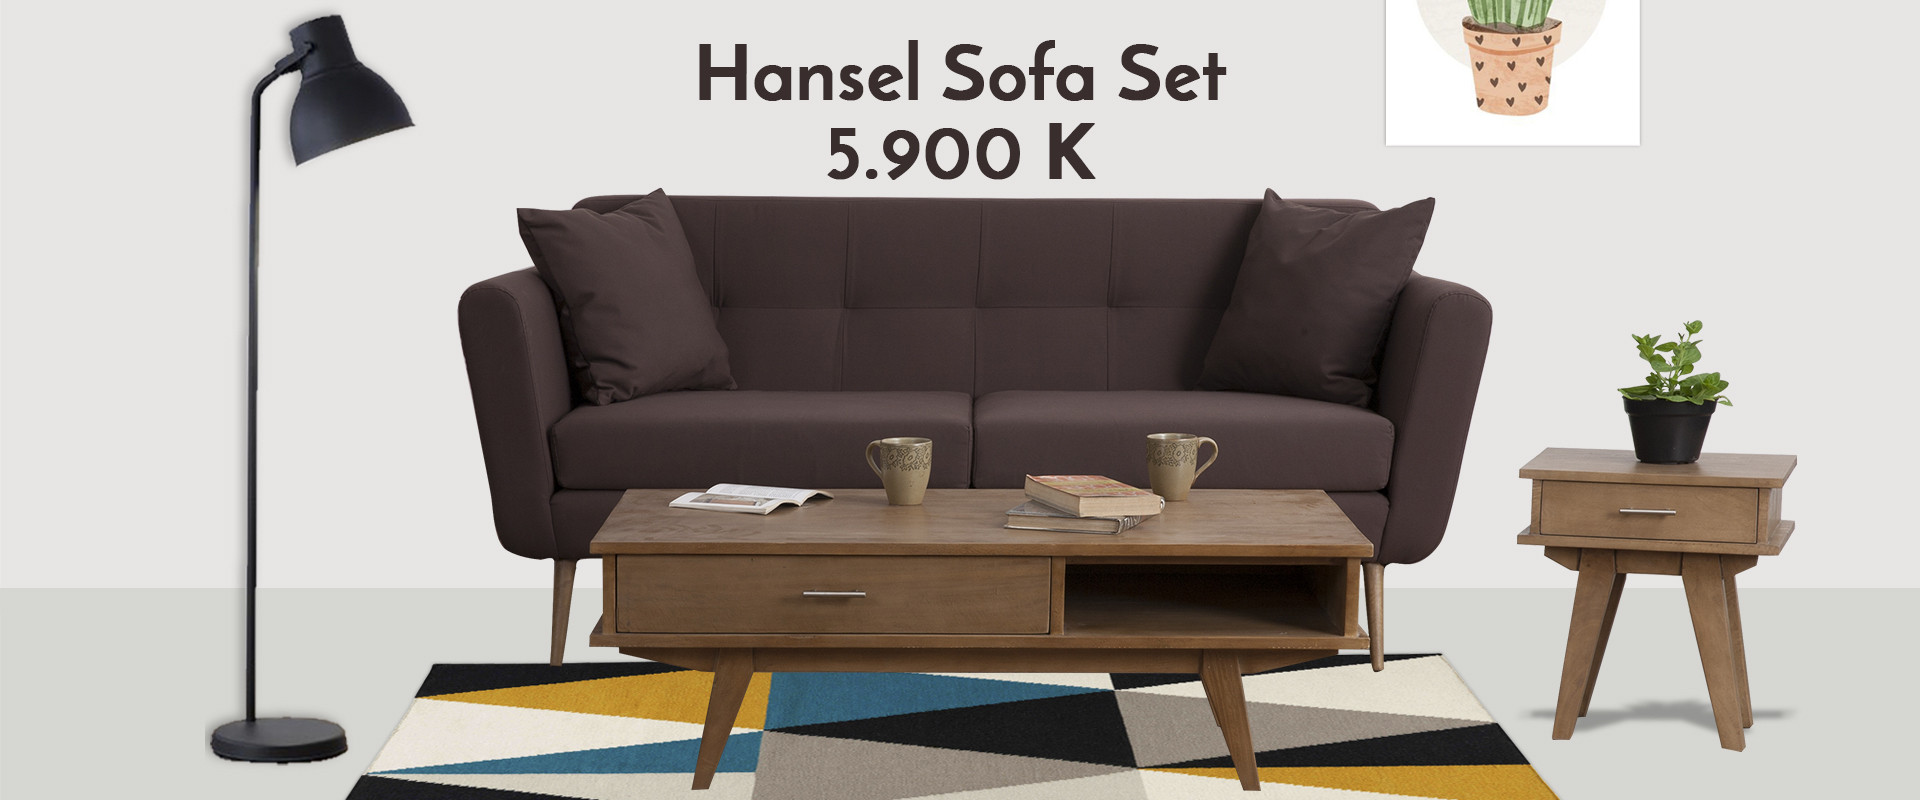 harga sofa klasik modern sleek sets for small flats andoleto bobo